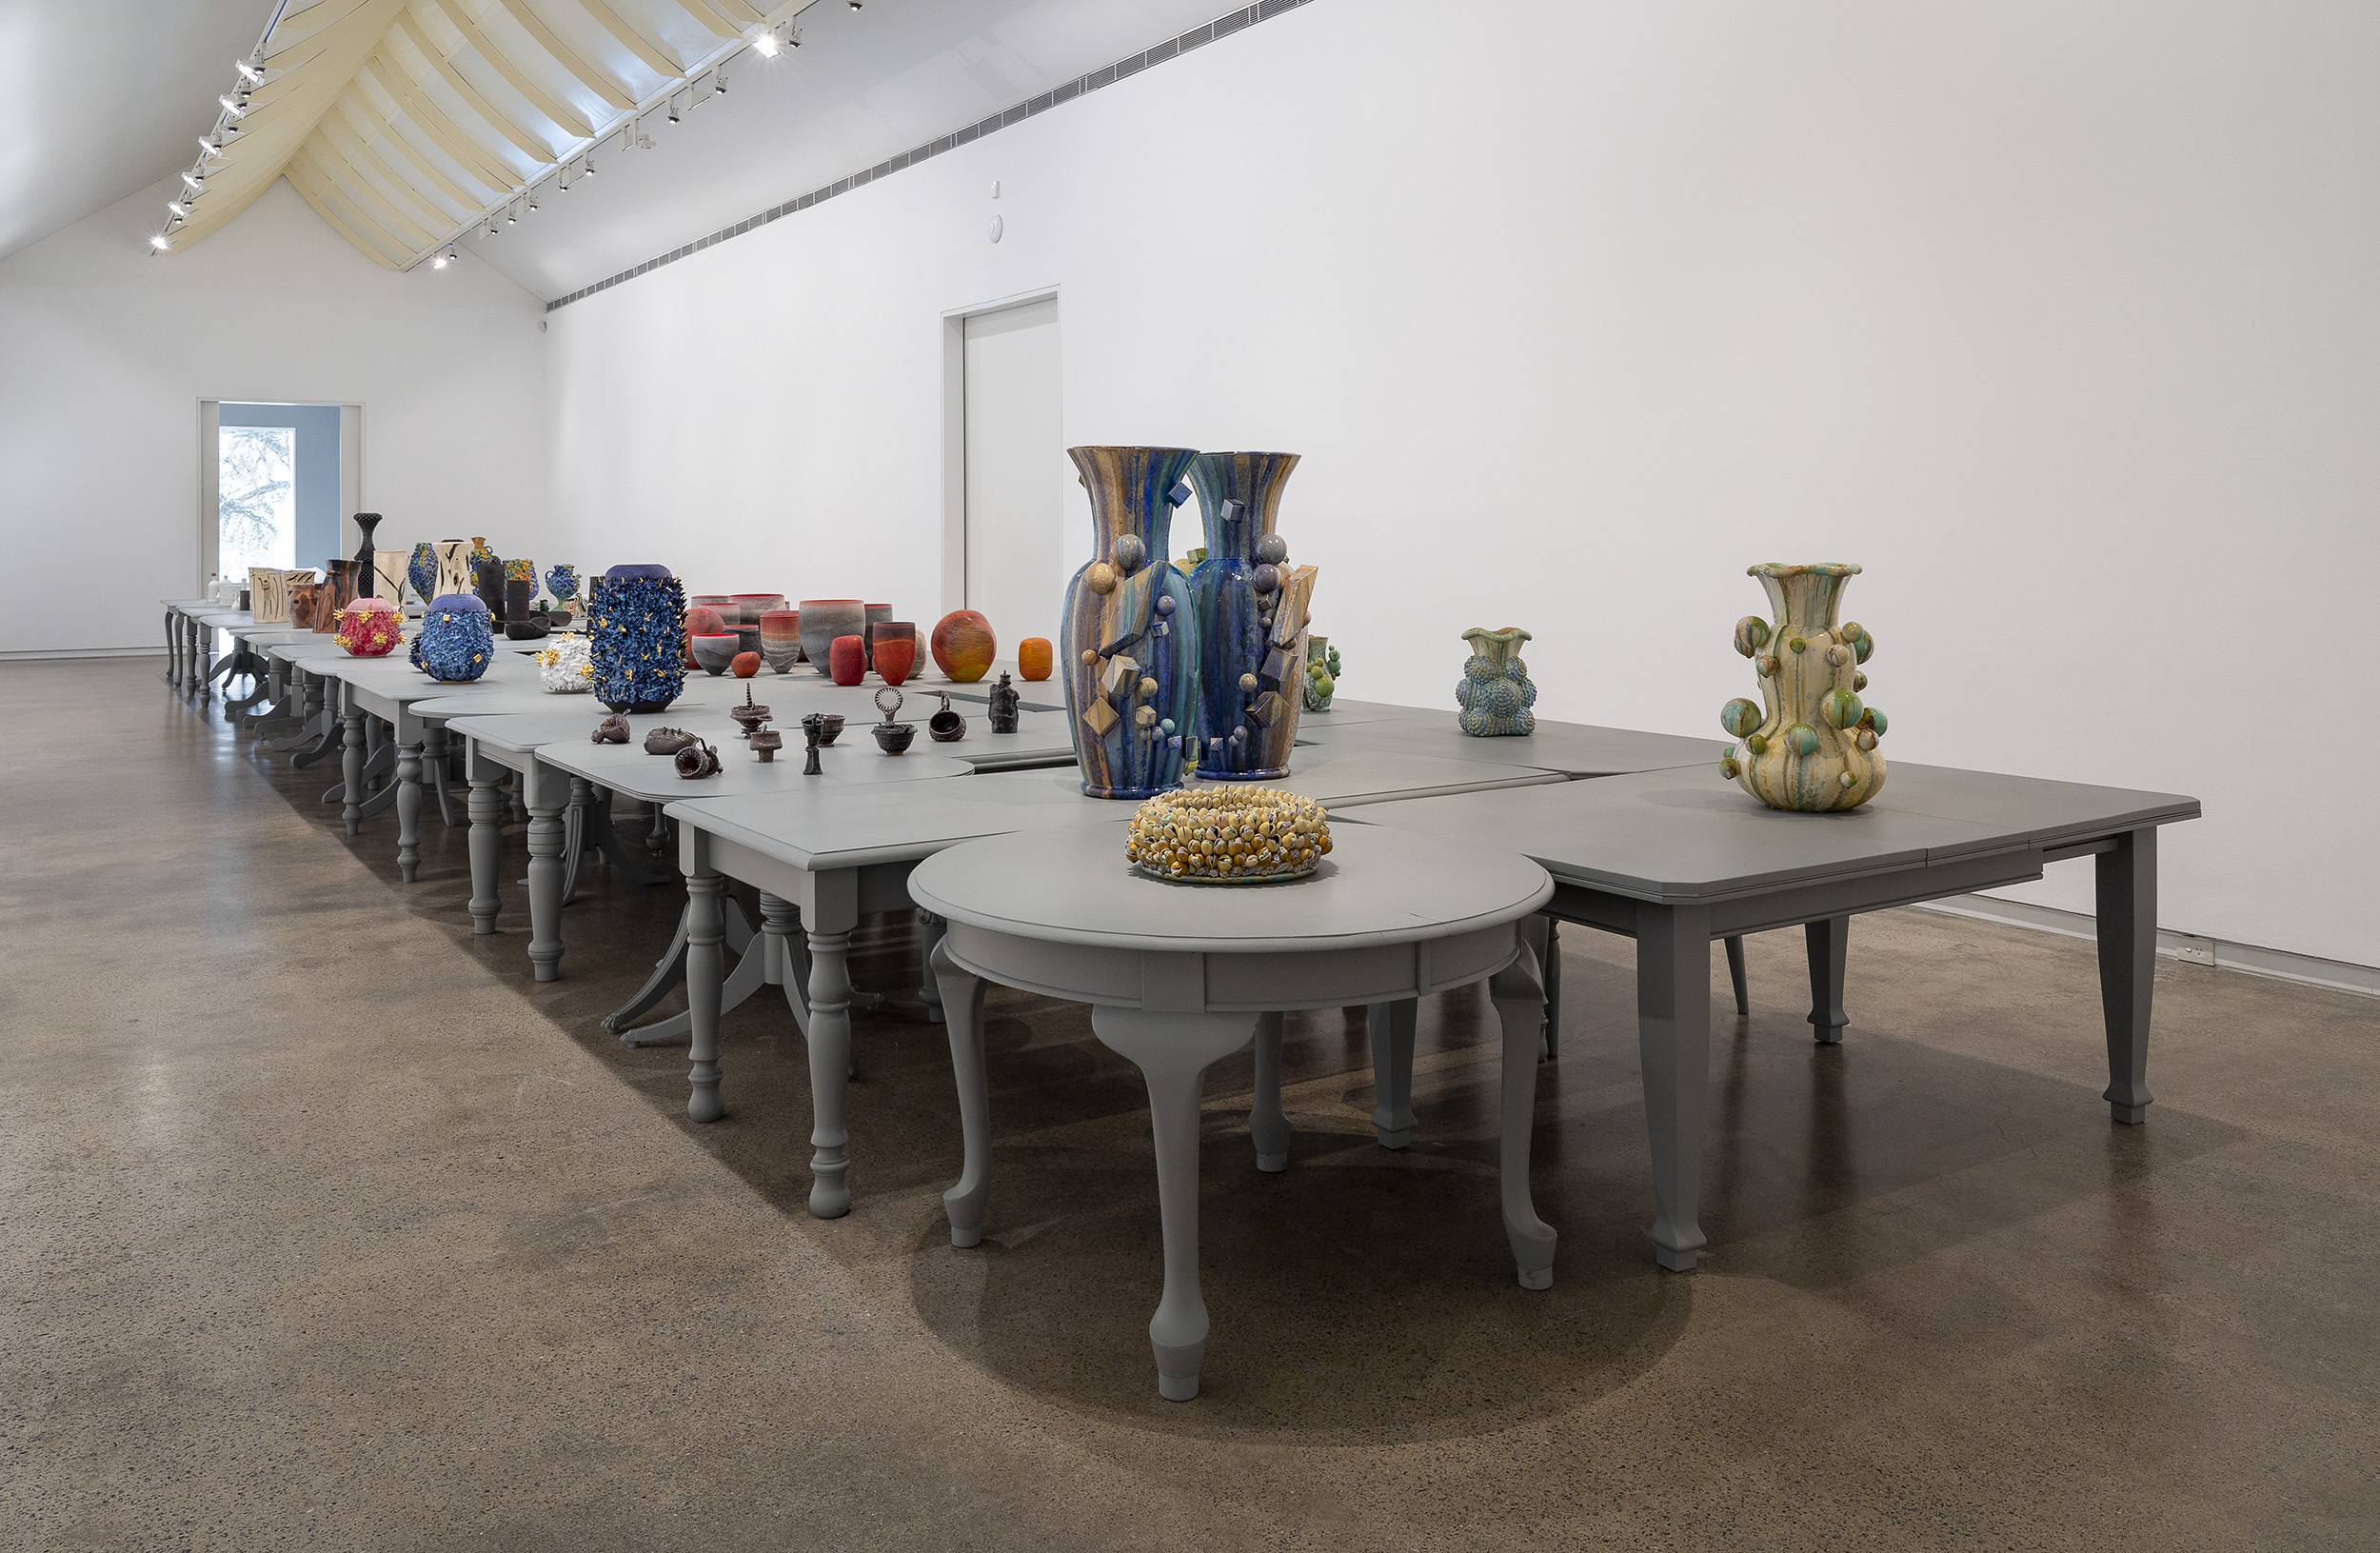 An Idea Needing to Be Made , exhibition installation view, Heide Museum of Modern Art, Melbourne, 2019; courtesy Heide Museum of Modern Art, Melbourne; photo: Christian Capurro